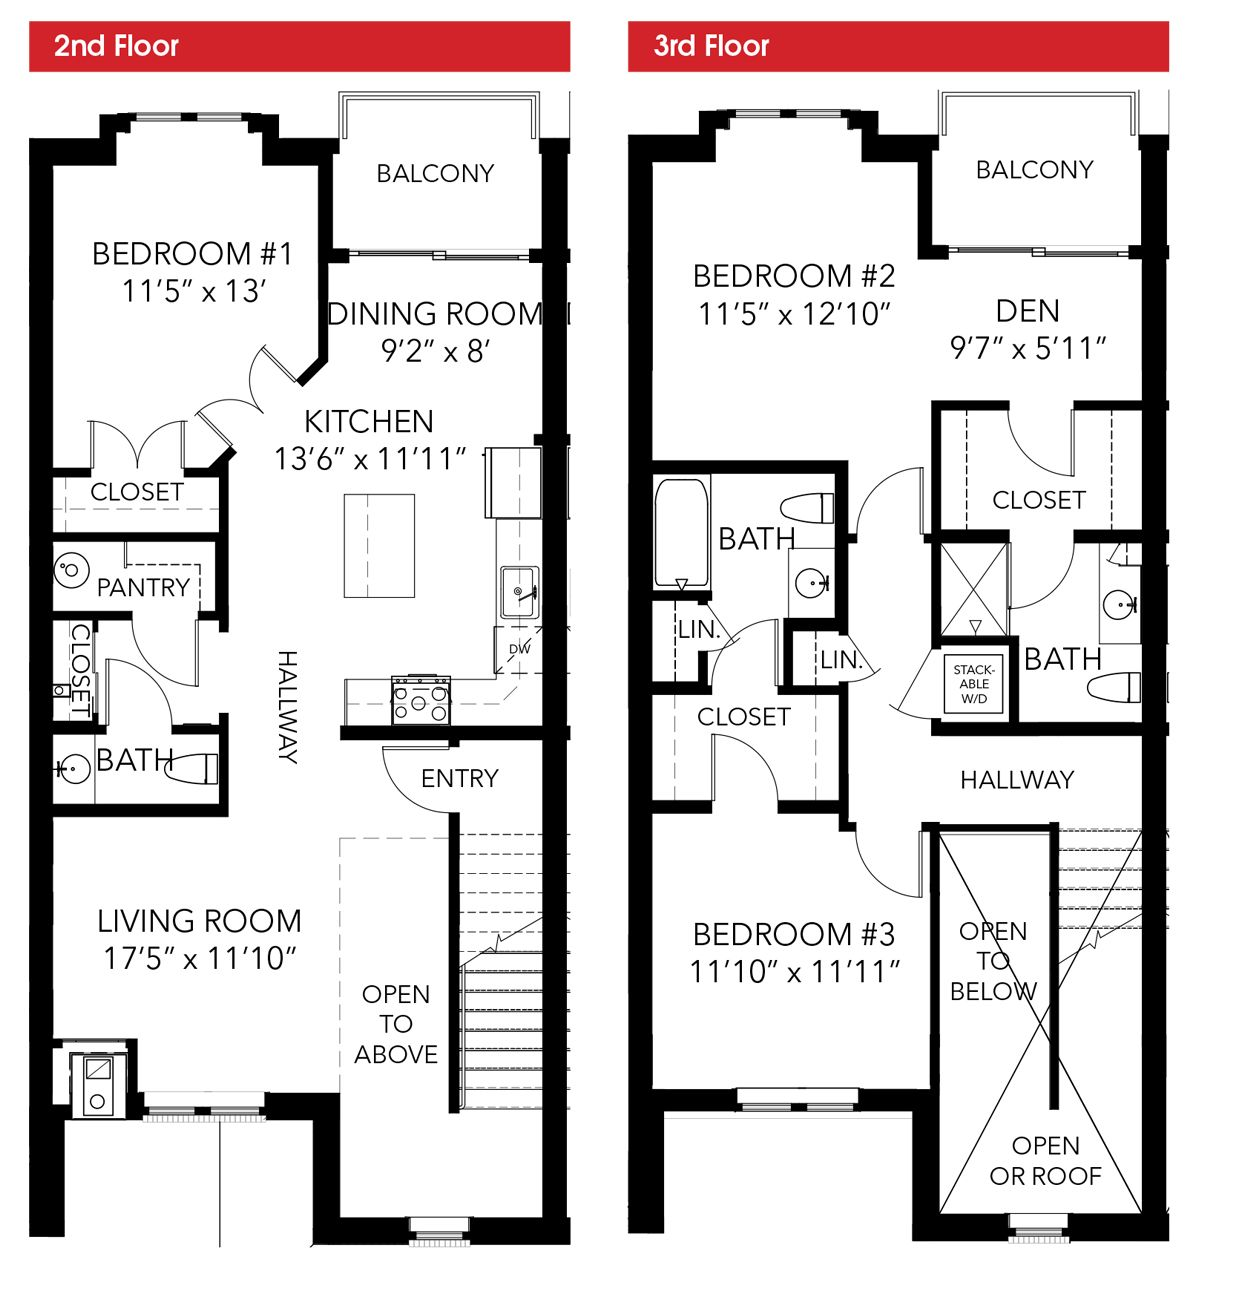 Oakbourne floor plan 3 bedroom 2 story leed certified for 5 bedroom townhouse floor plans